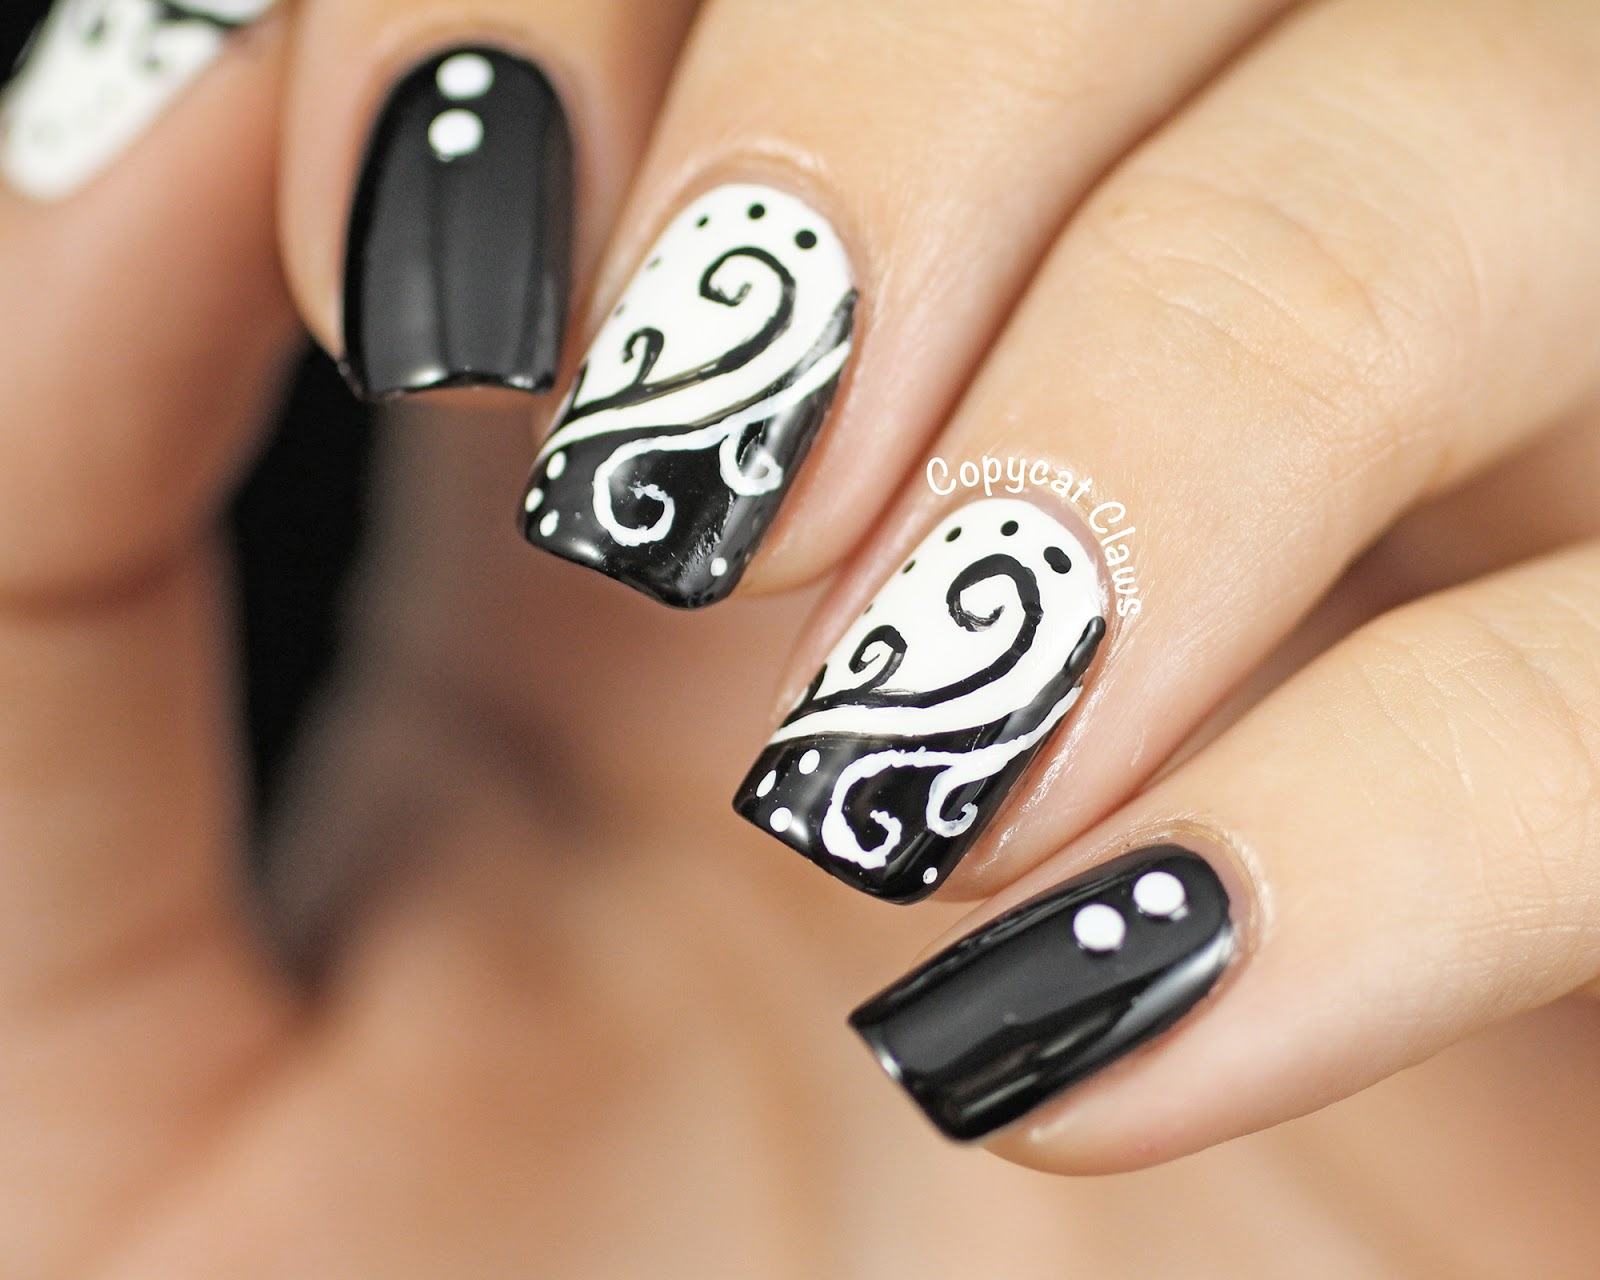 copycat claws 31dc2014 day 7 black and white swirls. Black Bedroom Furniture Sets. Home Design Ideas